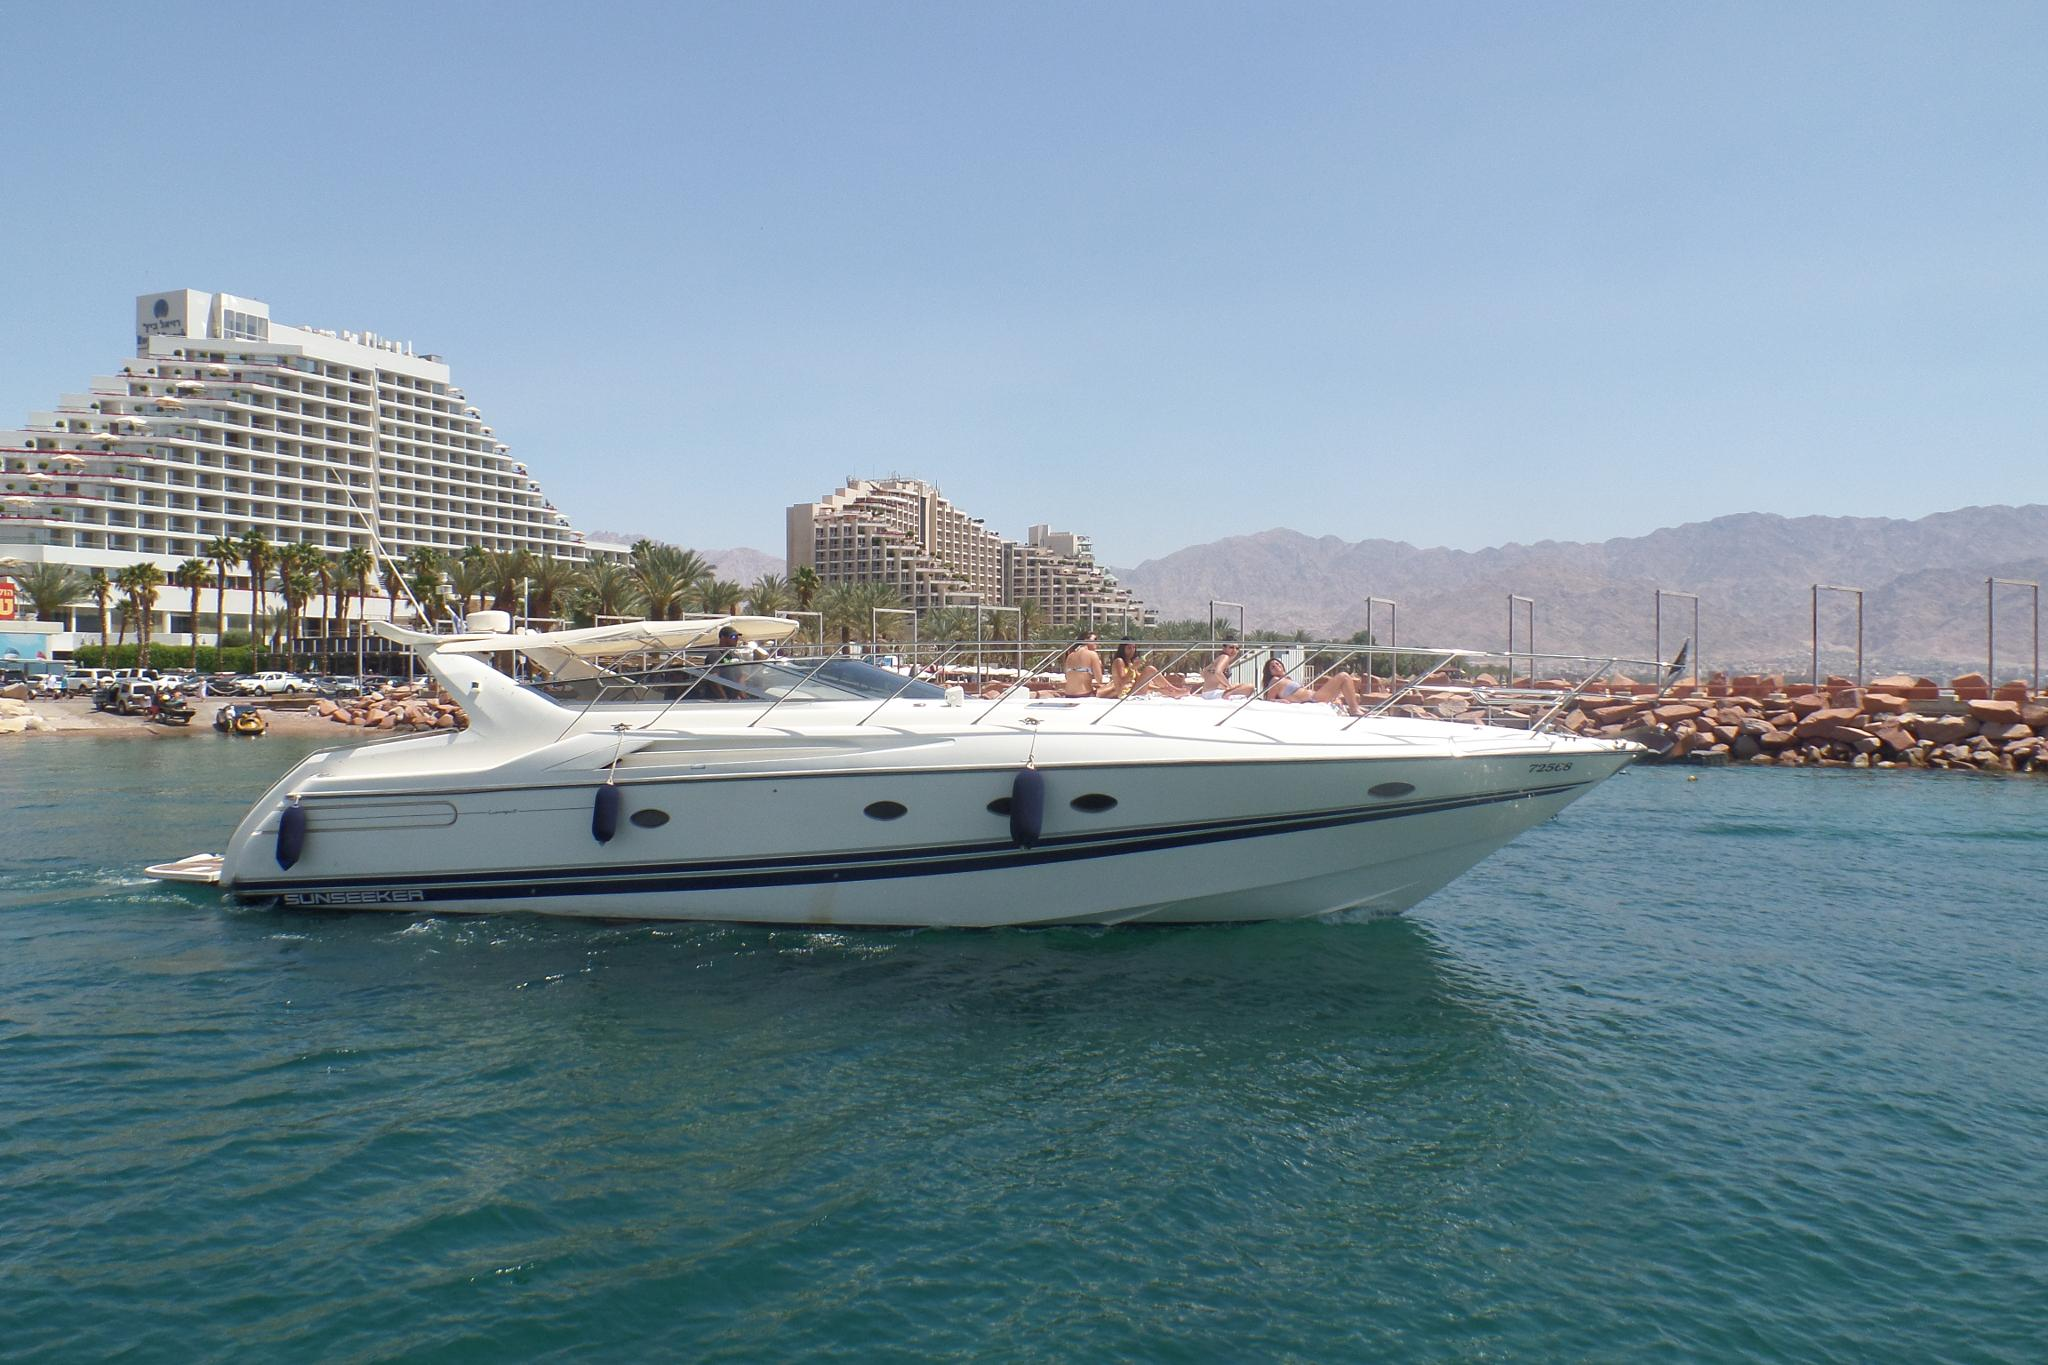 A yacht in Eilat - View from the boat - April 2015 by Francine Waterman